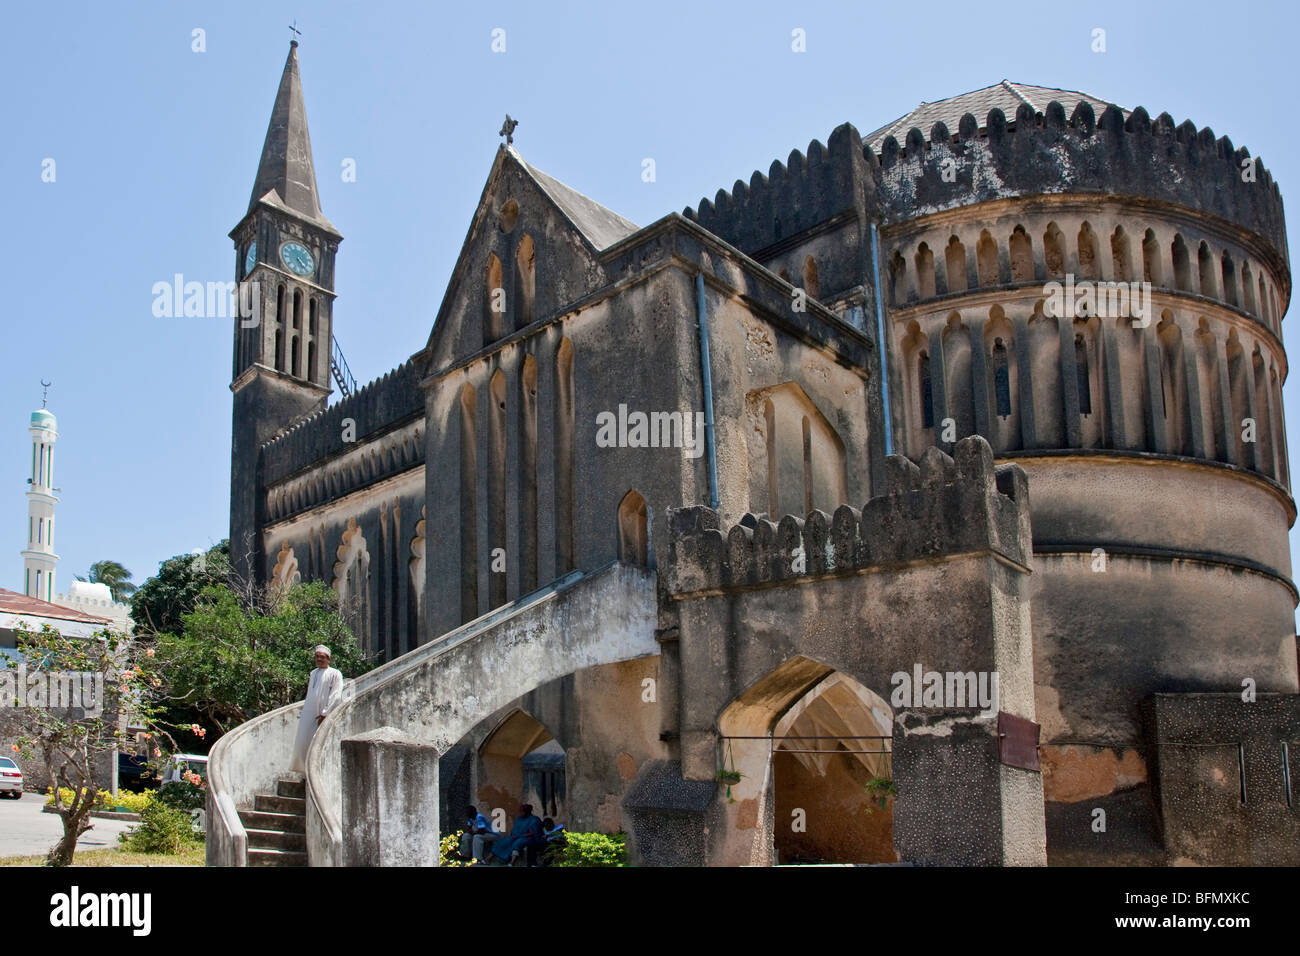 Tanzania, Zanzibar, Stone Town. The Anglican Cathedral Church of Christ had its foundation stone laid on Christmas - Stock Image